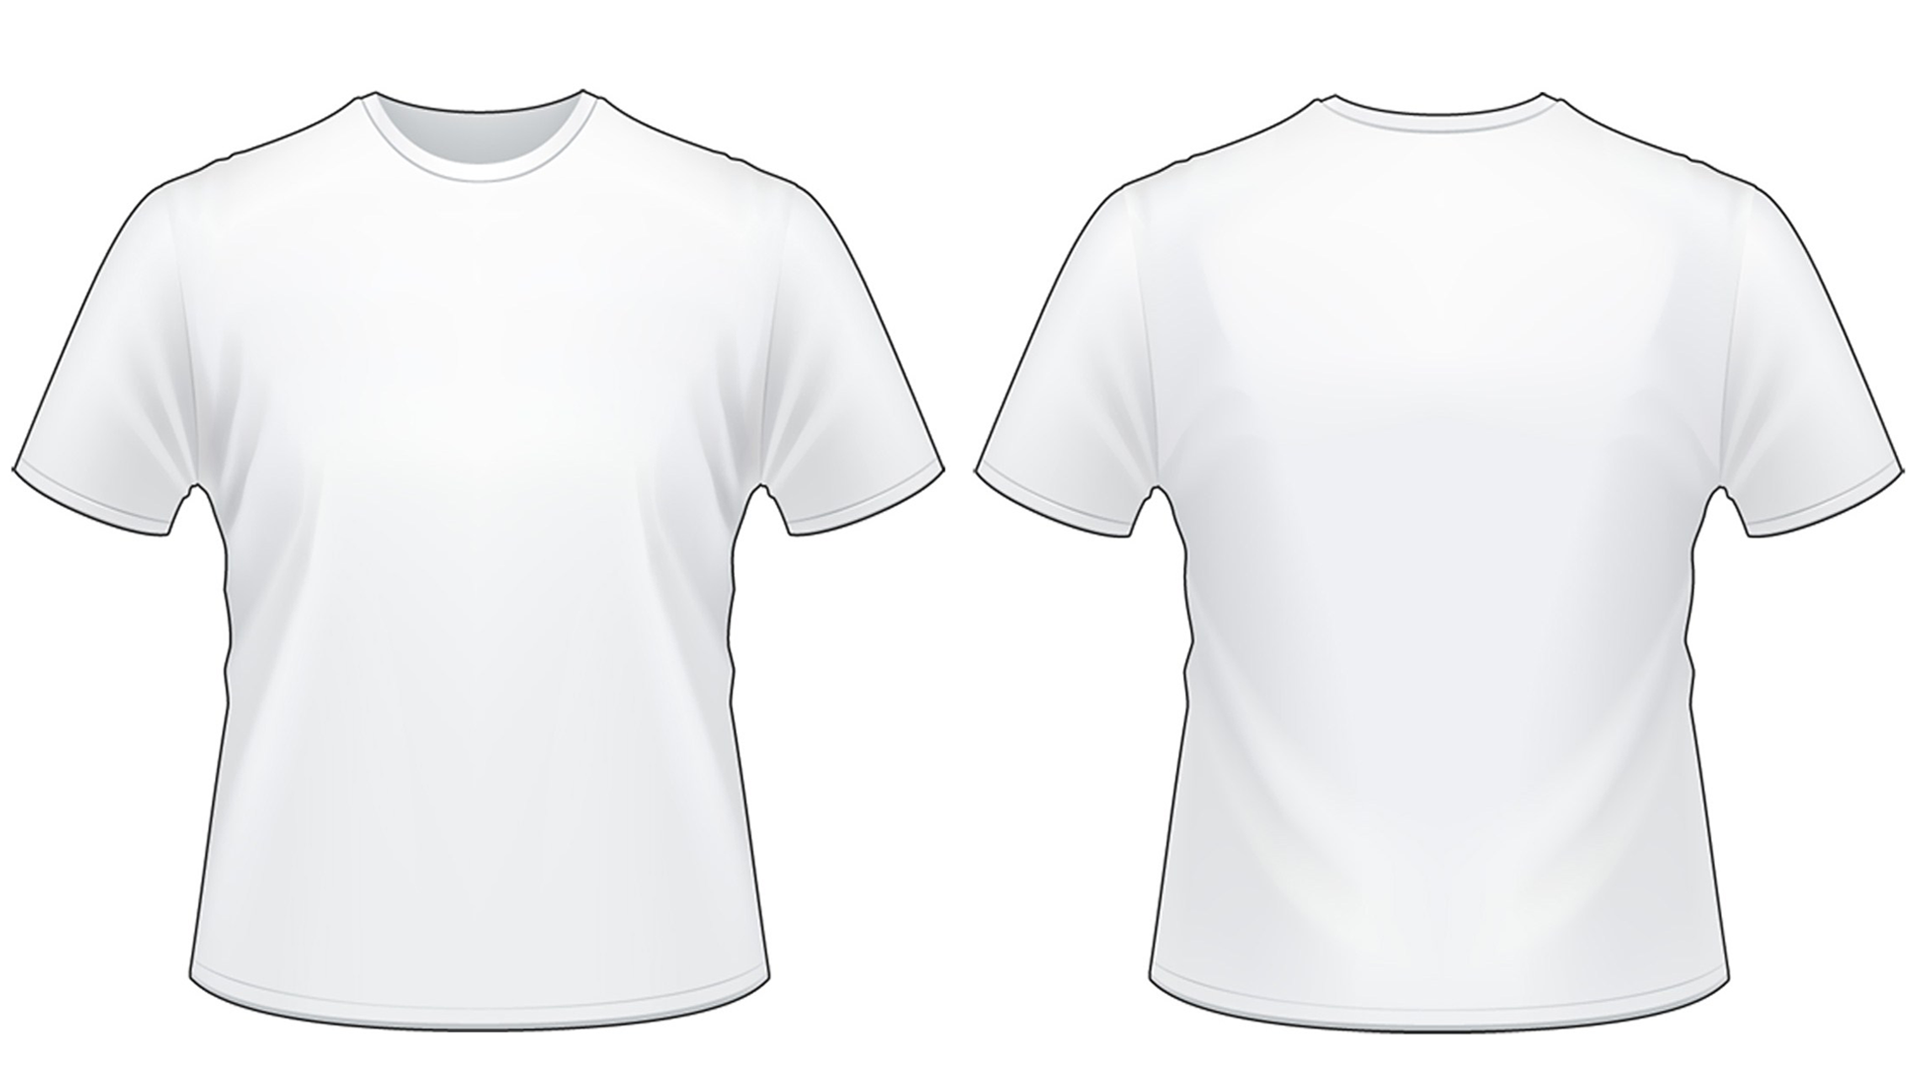 Blank Tshirt Template Worksheet In